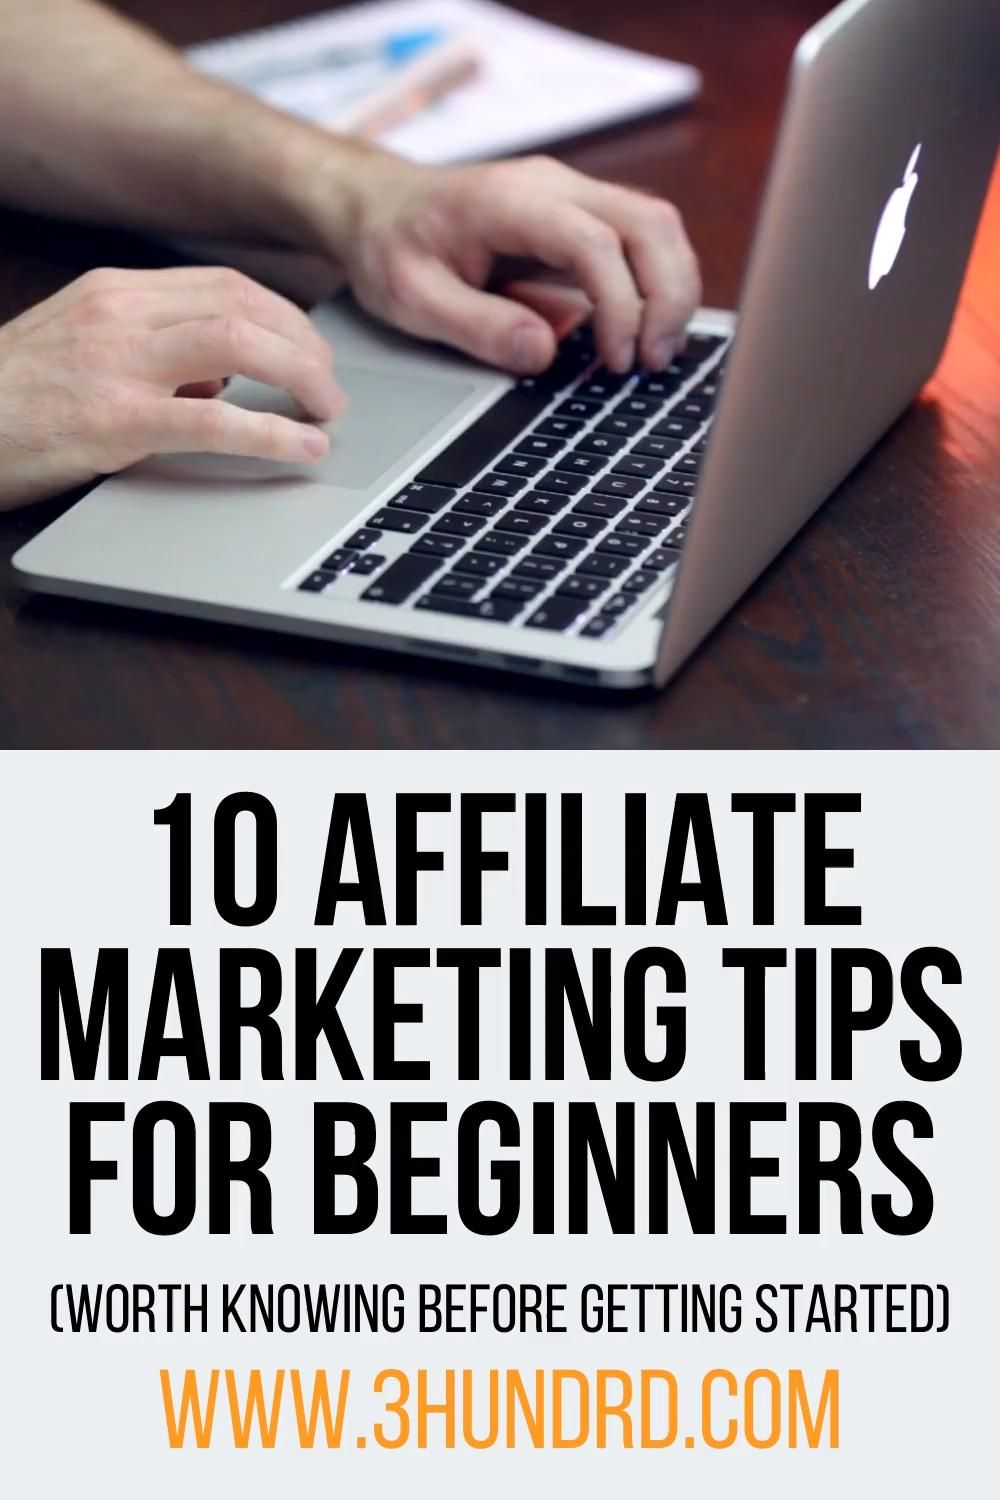 Getting into affiliate marketing?  Here are 10 of my best affiliate marketing tips for beginners which are worth knowing before you create your first website.